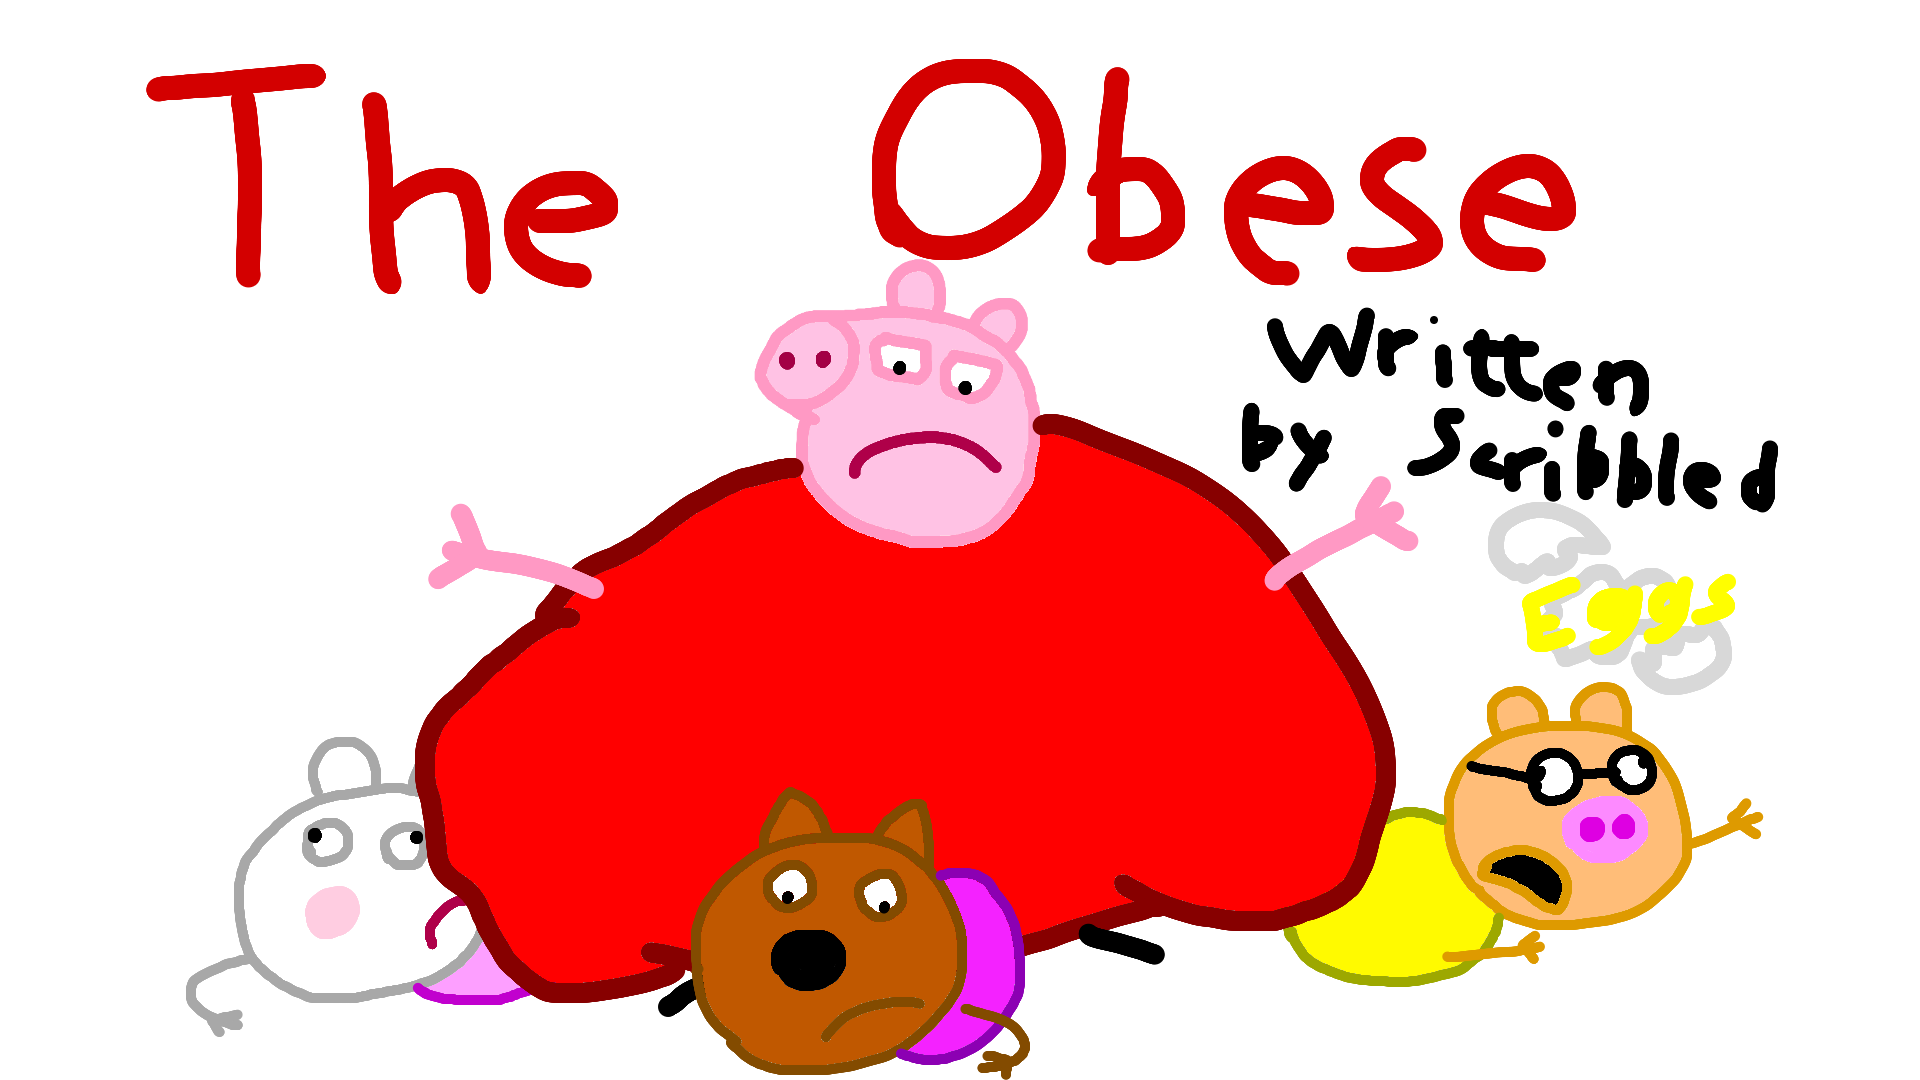 The Obese | Peppa Pig Fanon Wiki | FANDOM powered by Wikia